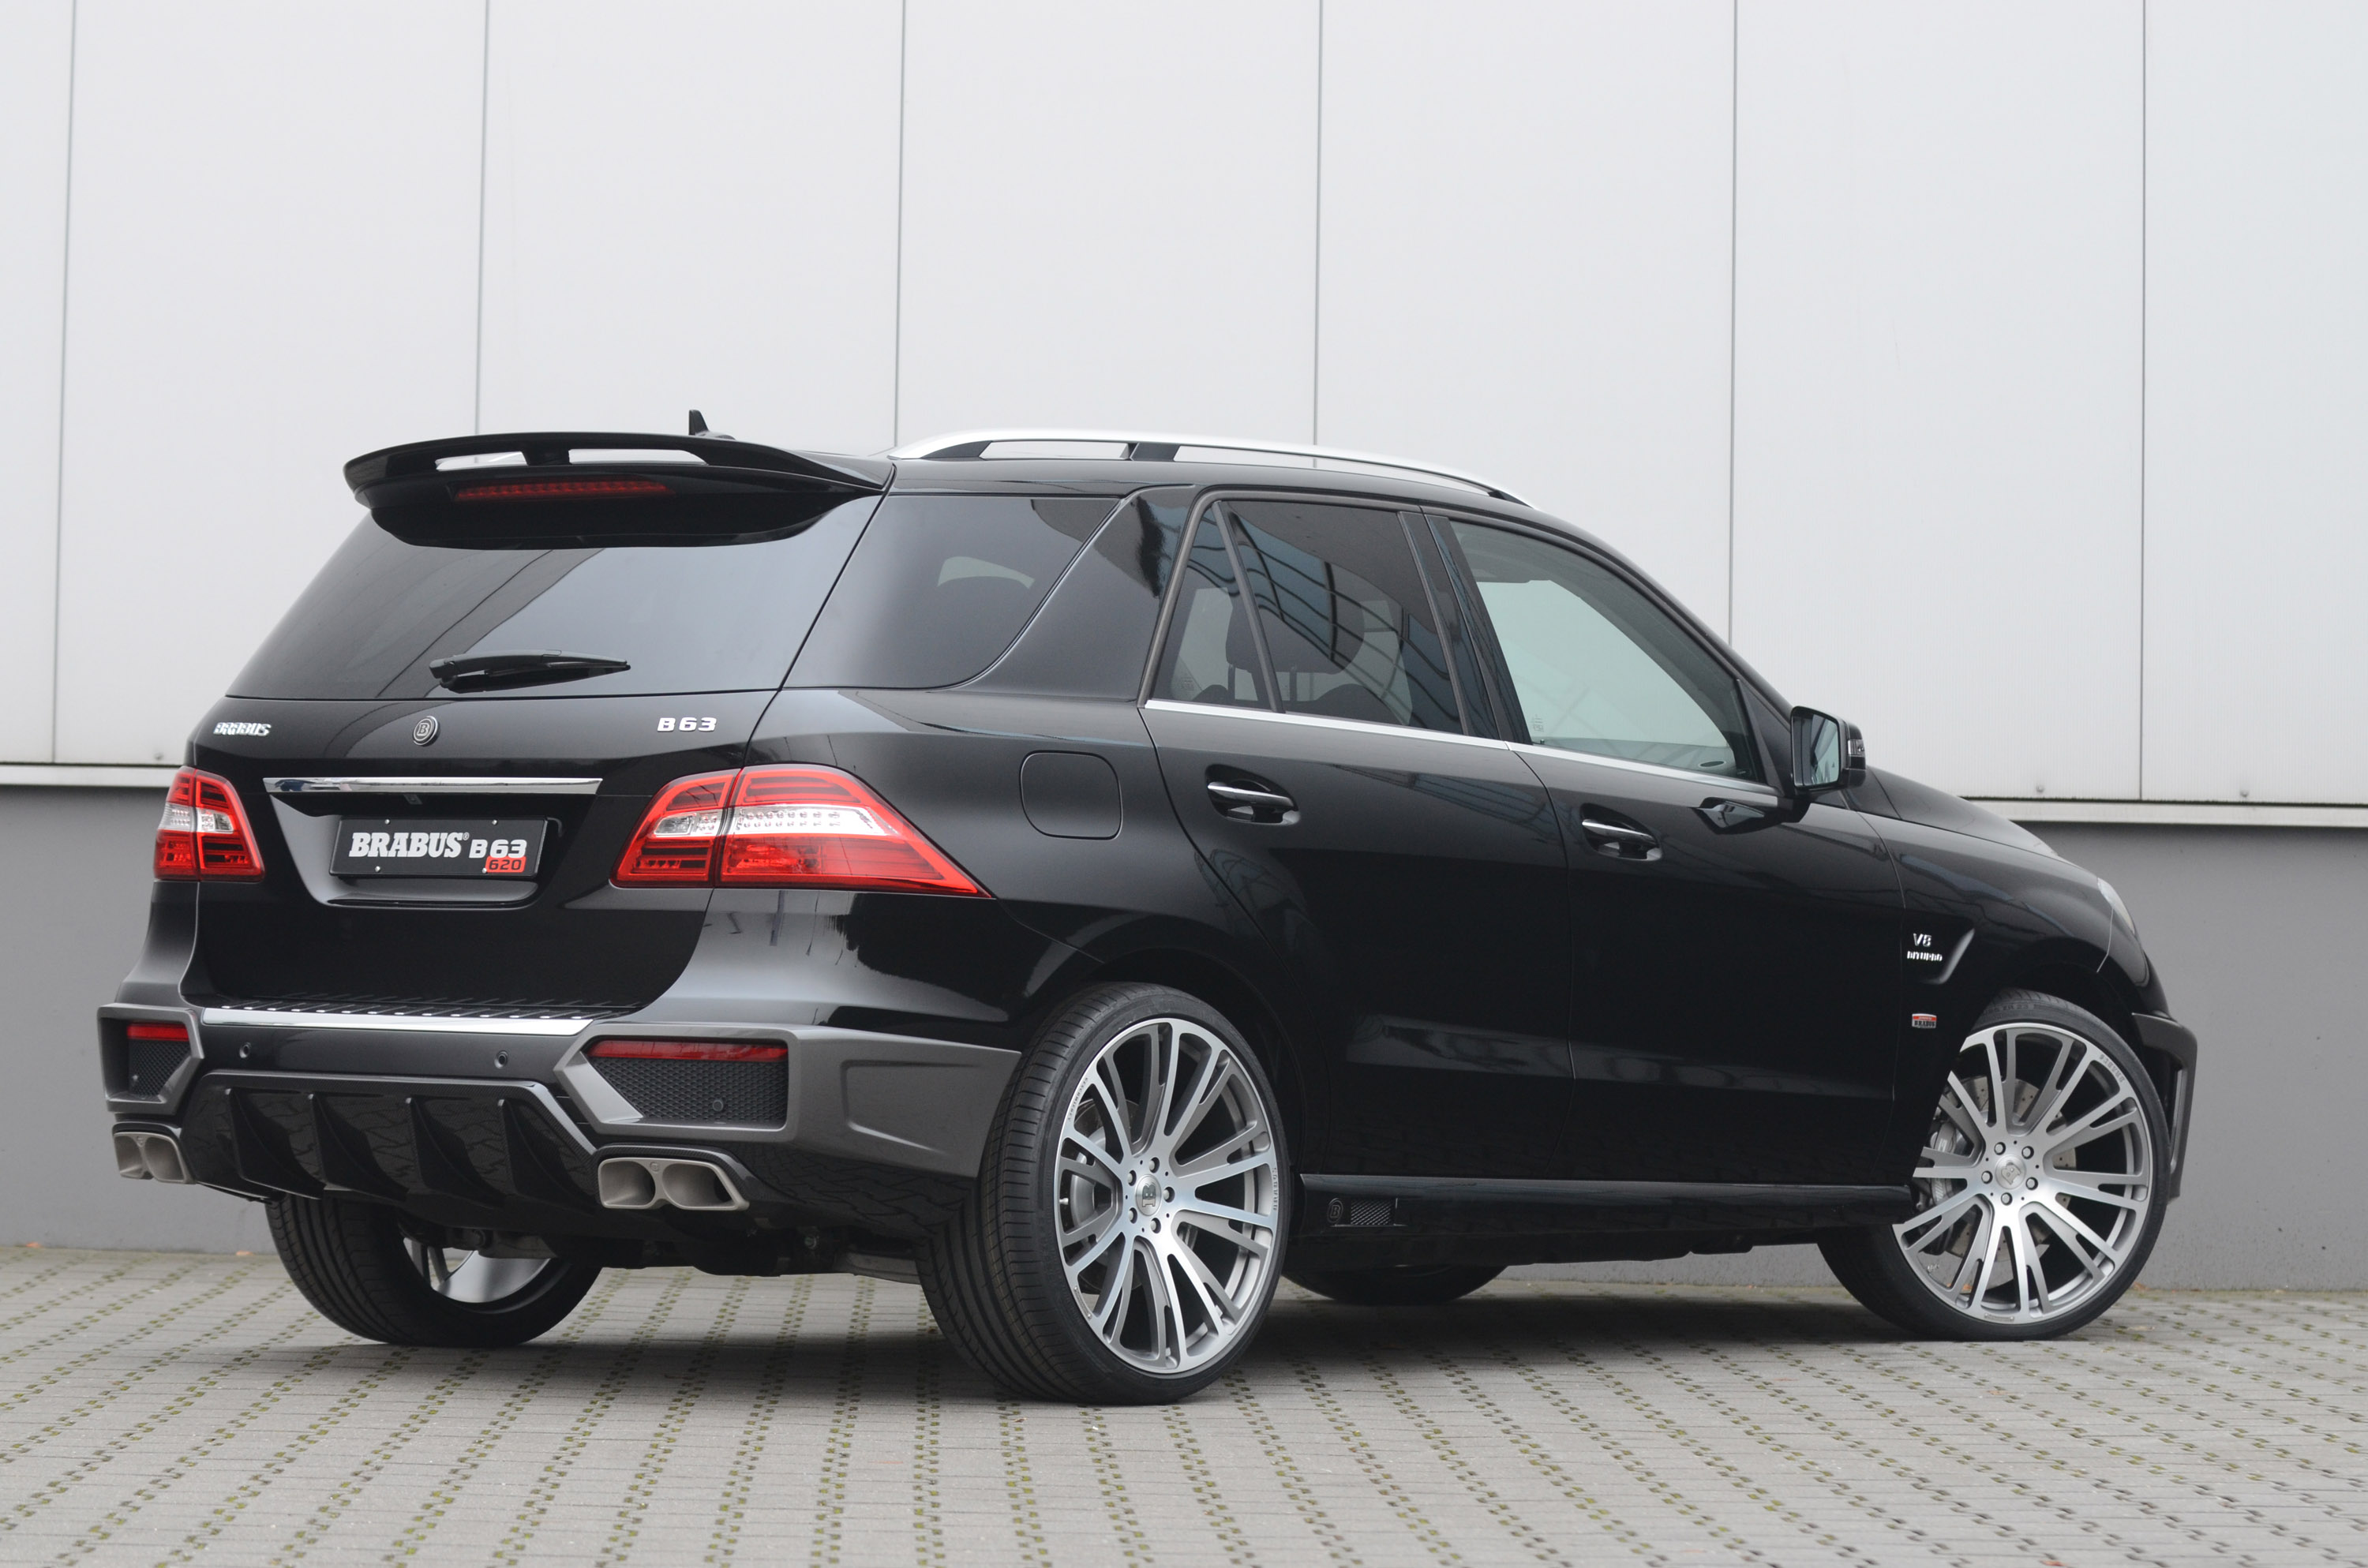 Brabus 2012 mercedes benz ml 63 amg for Mercedes benz schedule a